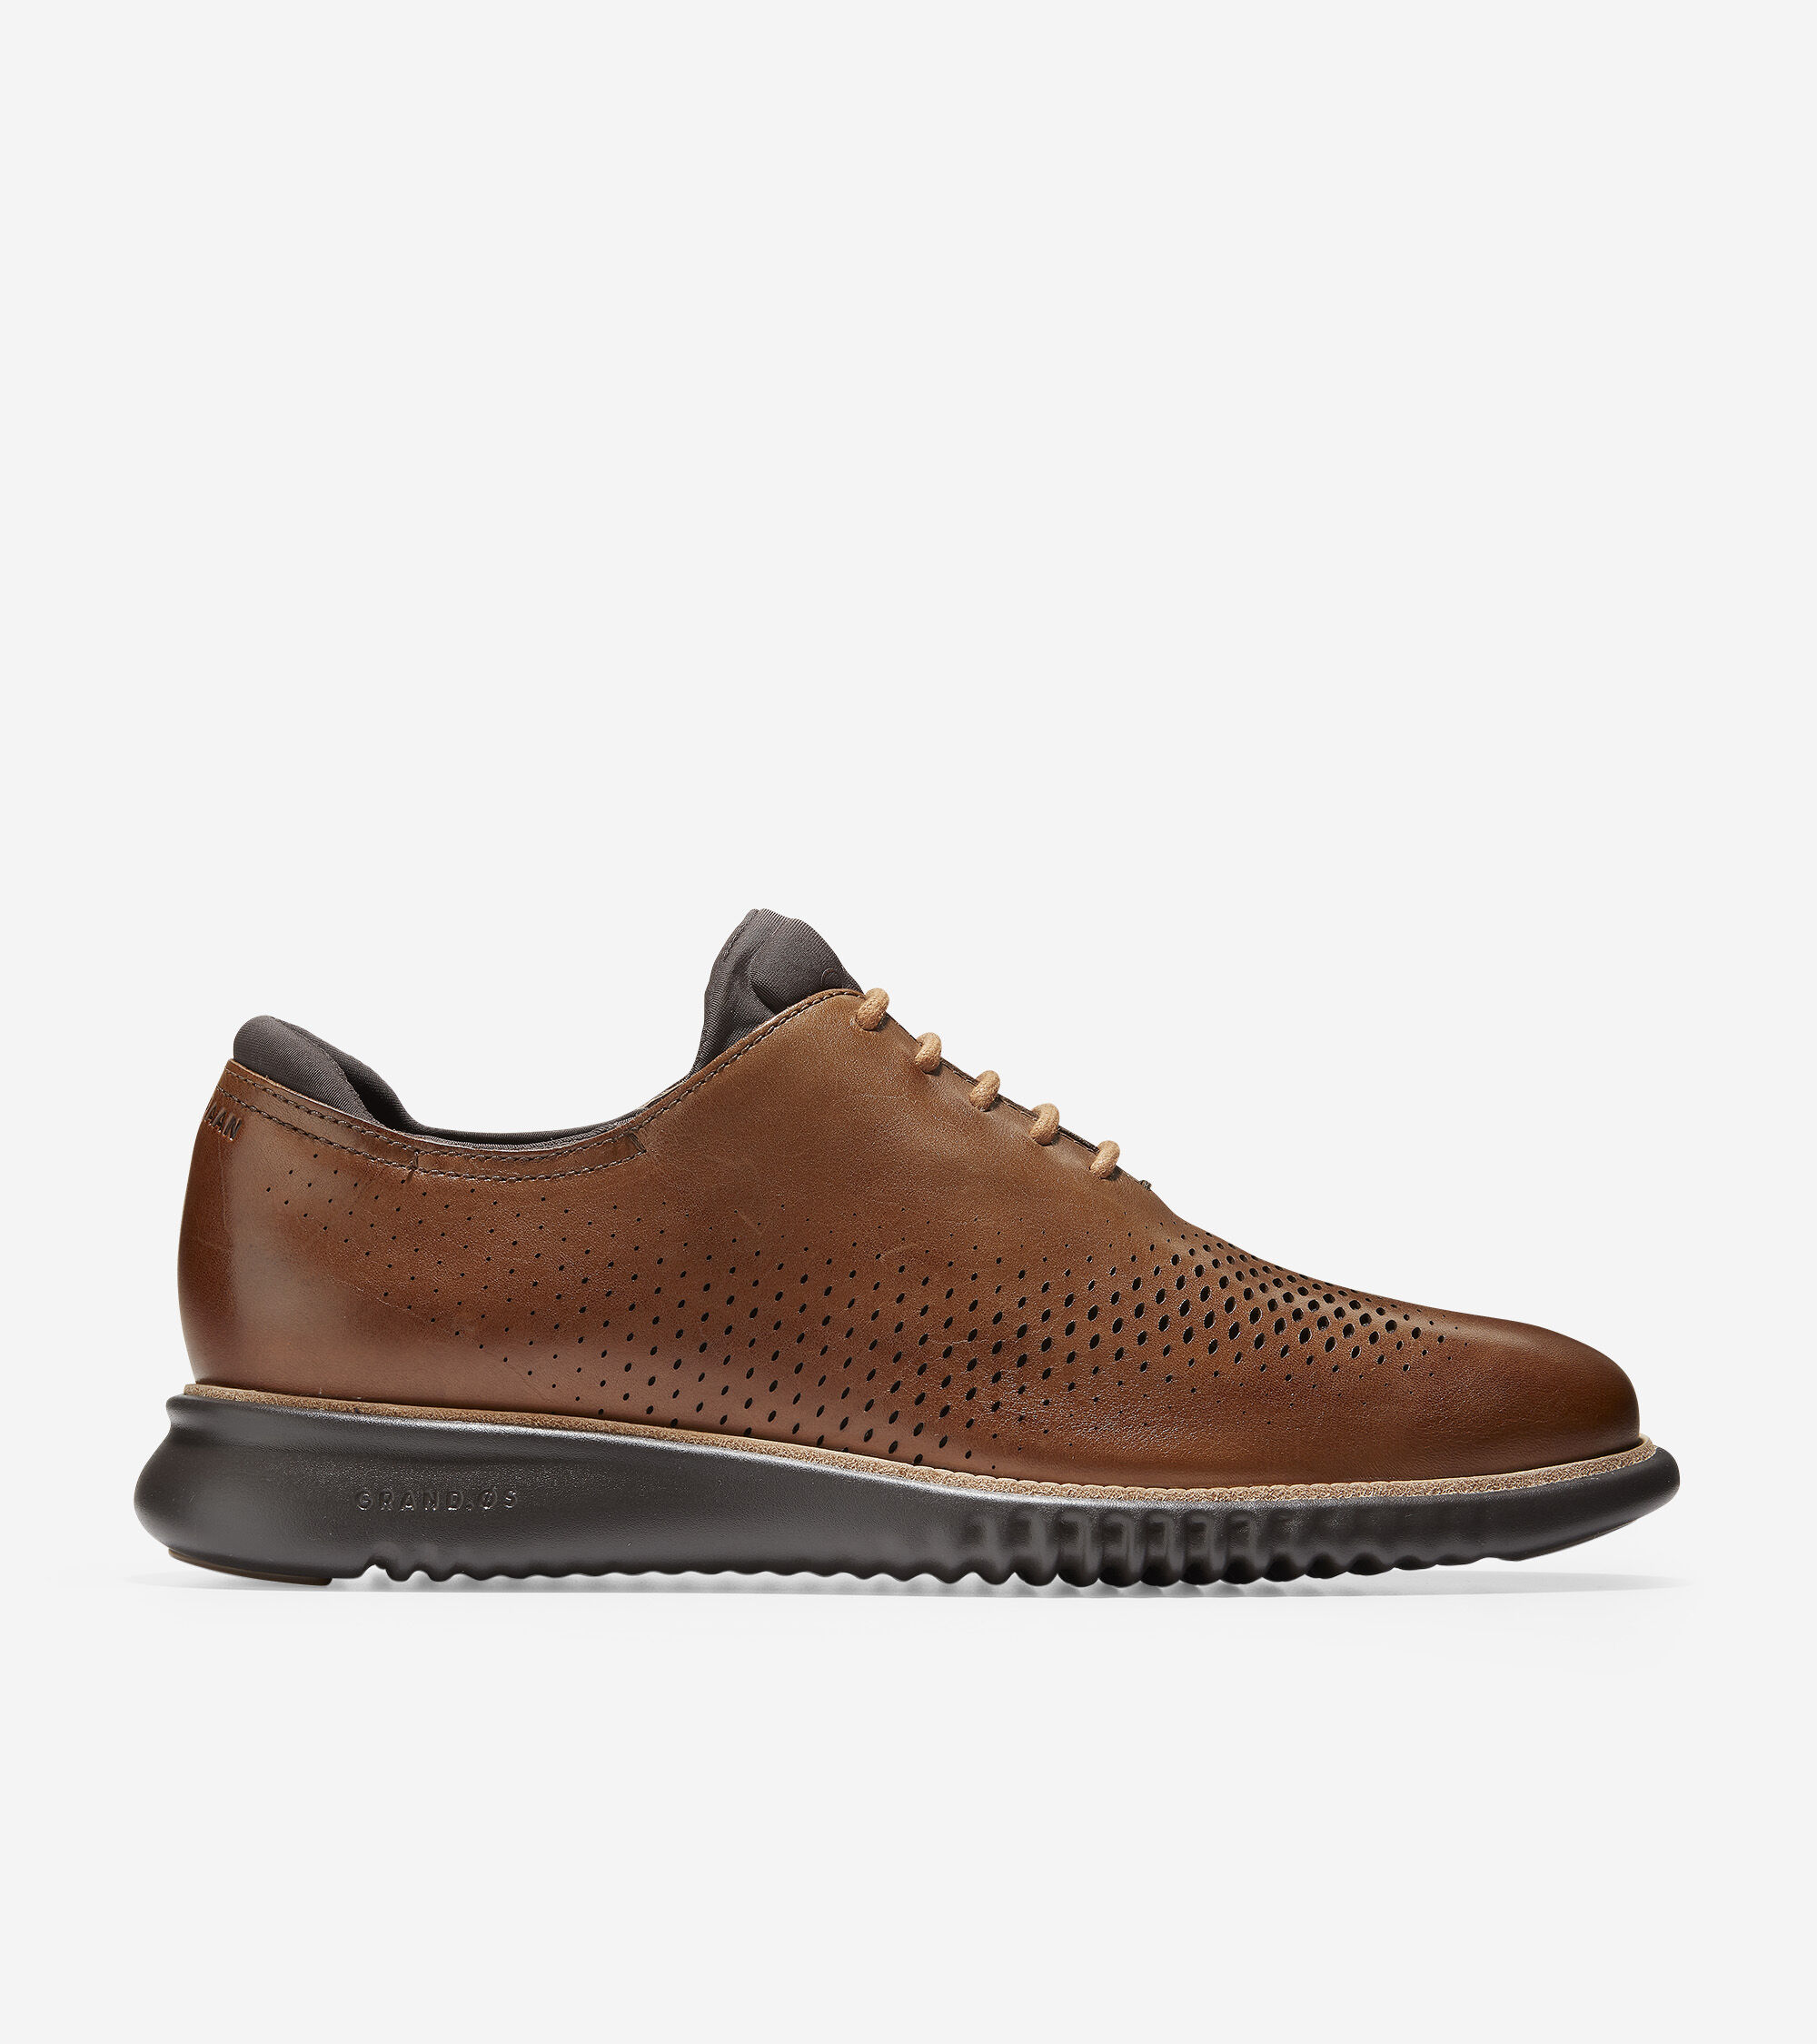 af33cb79496 Men s 2.ZEROGRAND Laser Wingtip Oxfords in British Tan